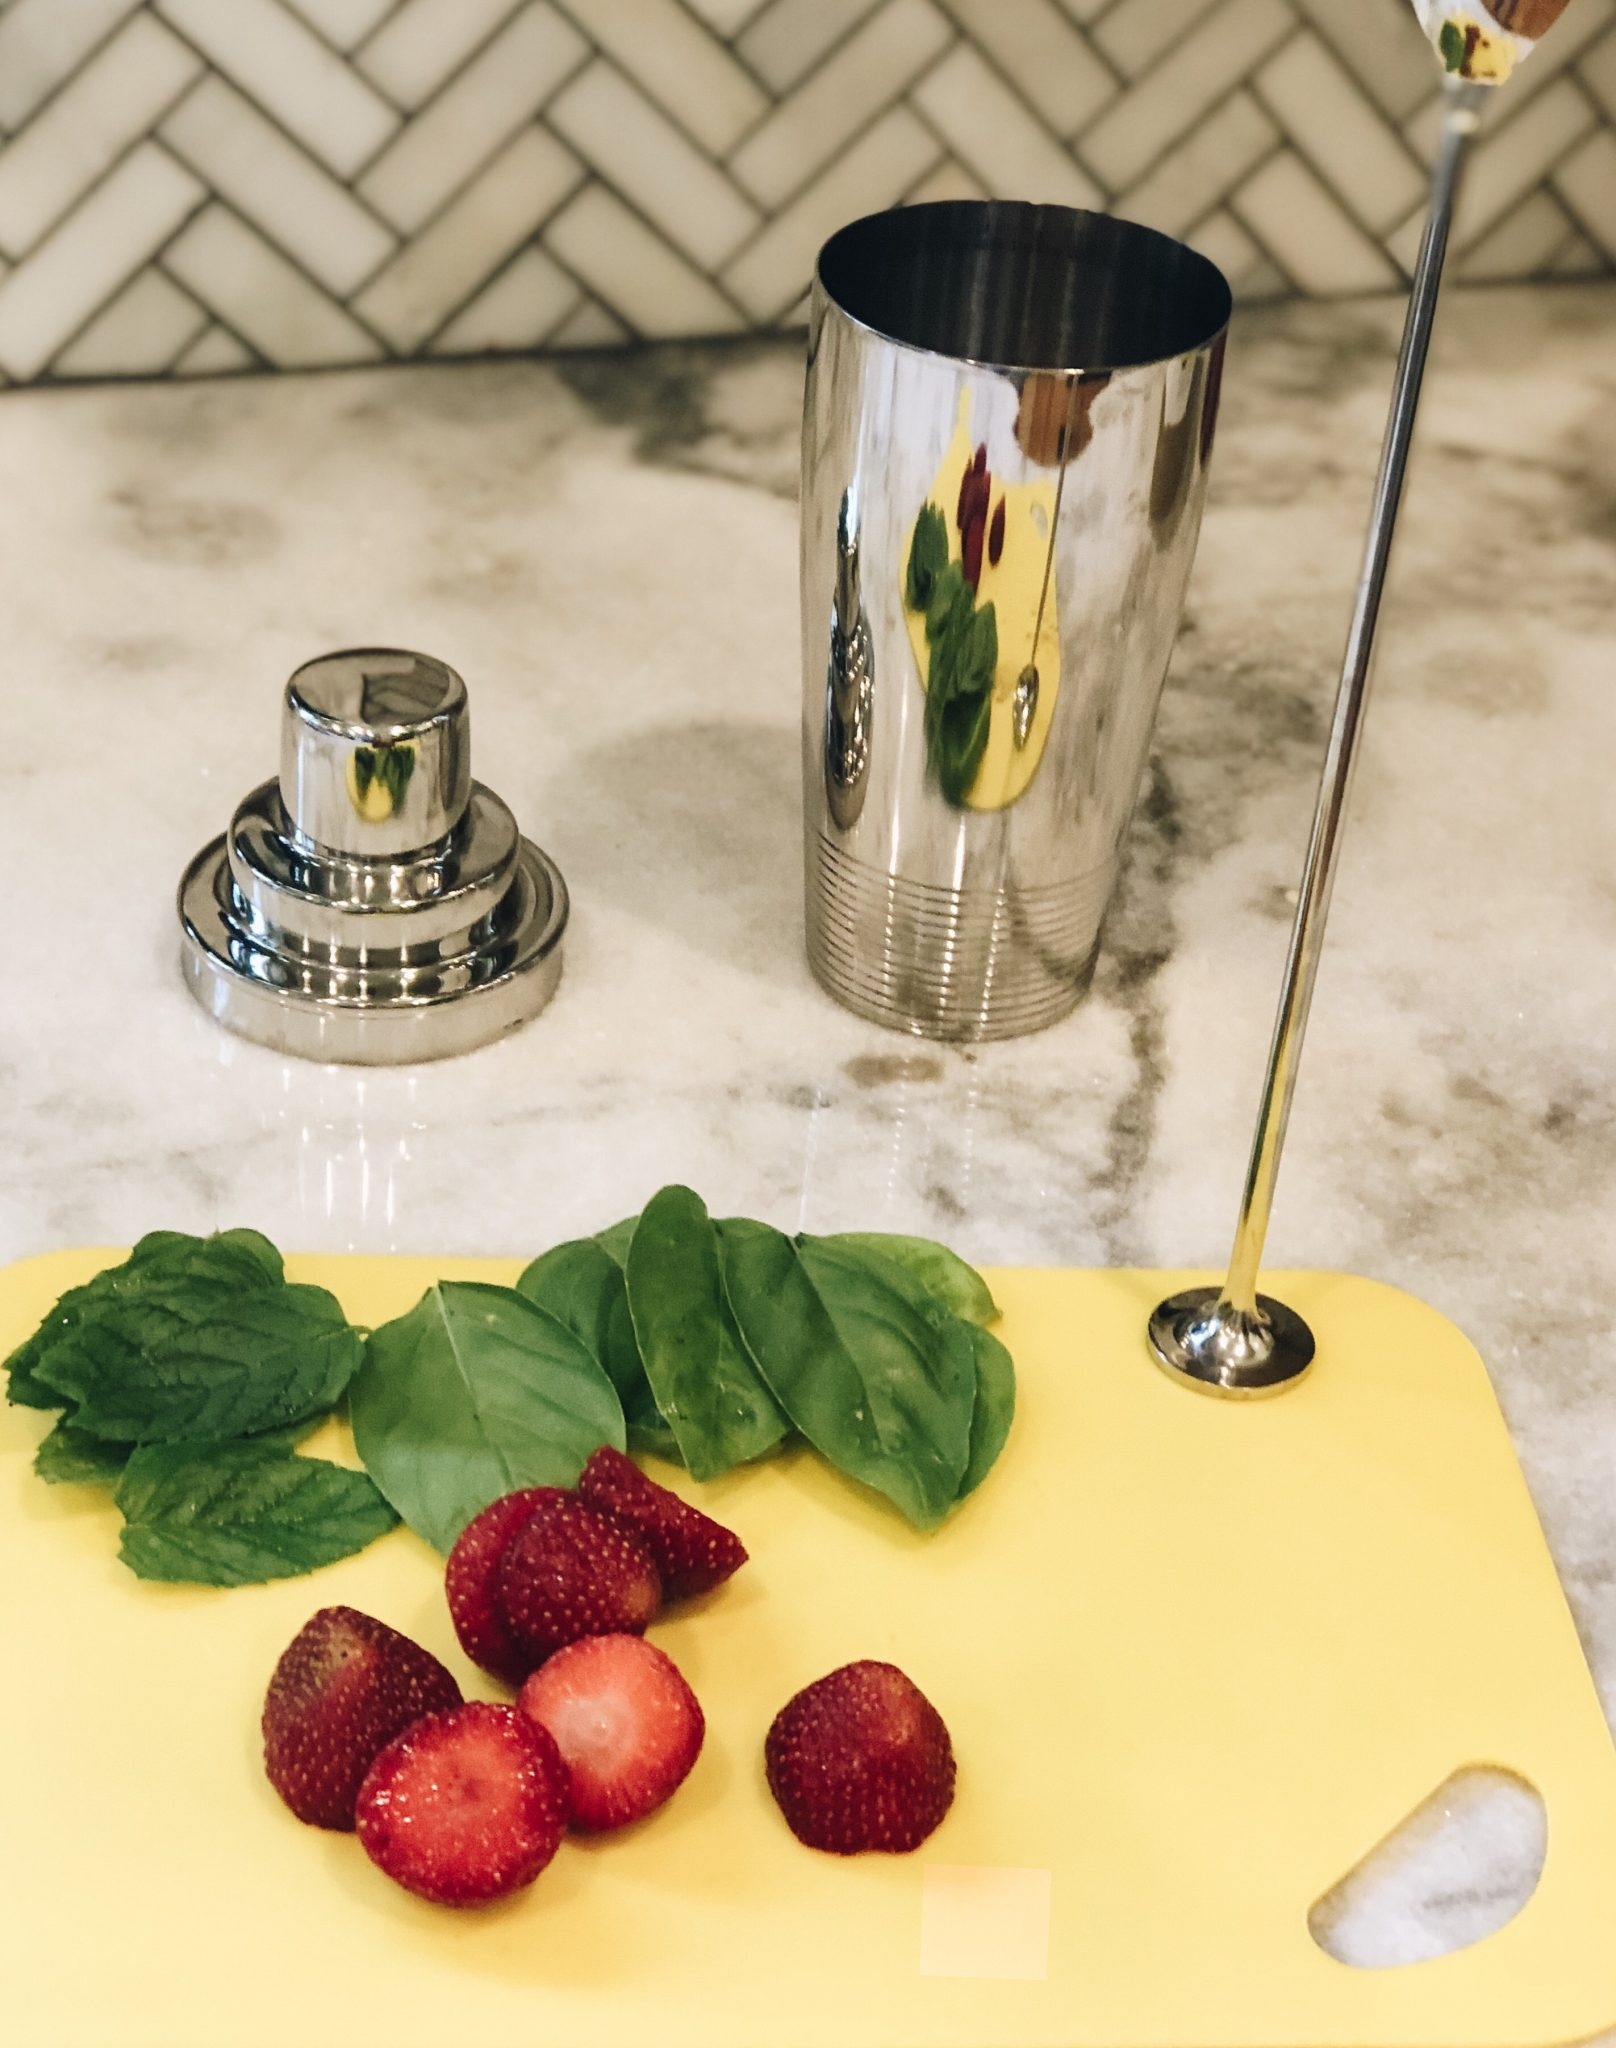 Strawberry Herb Lemonade Recipe | Daily Splendor Life and Style Blog | drink recipe, summertime, mason jar, #vodkalemonade #strawberrylemonade #summerdrink #basilandmint